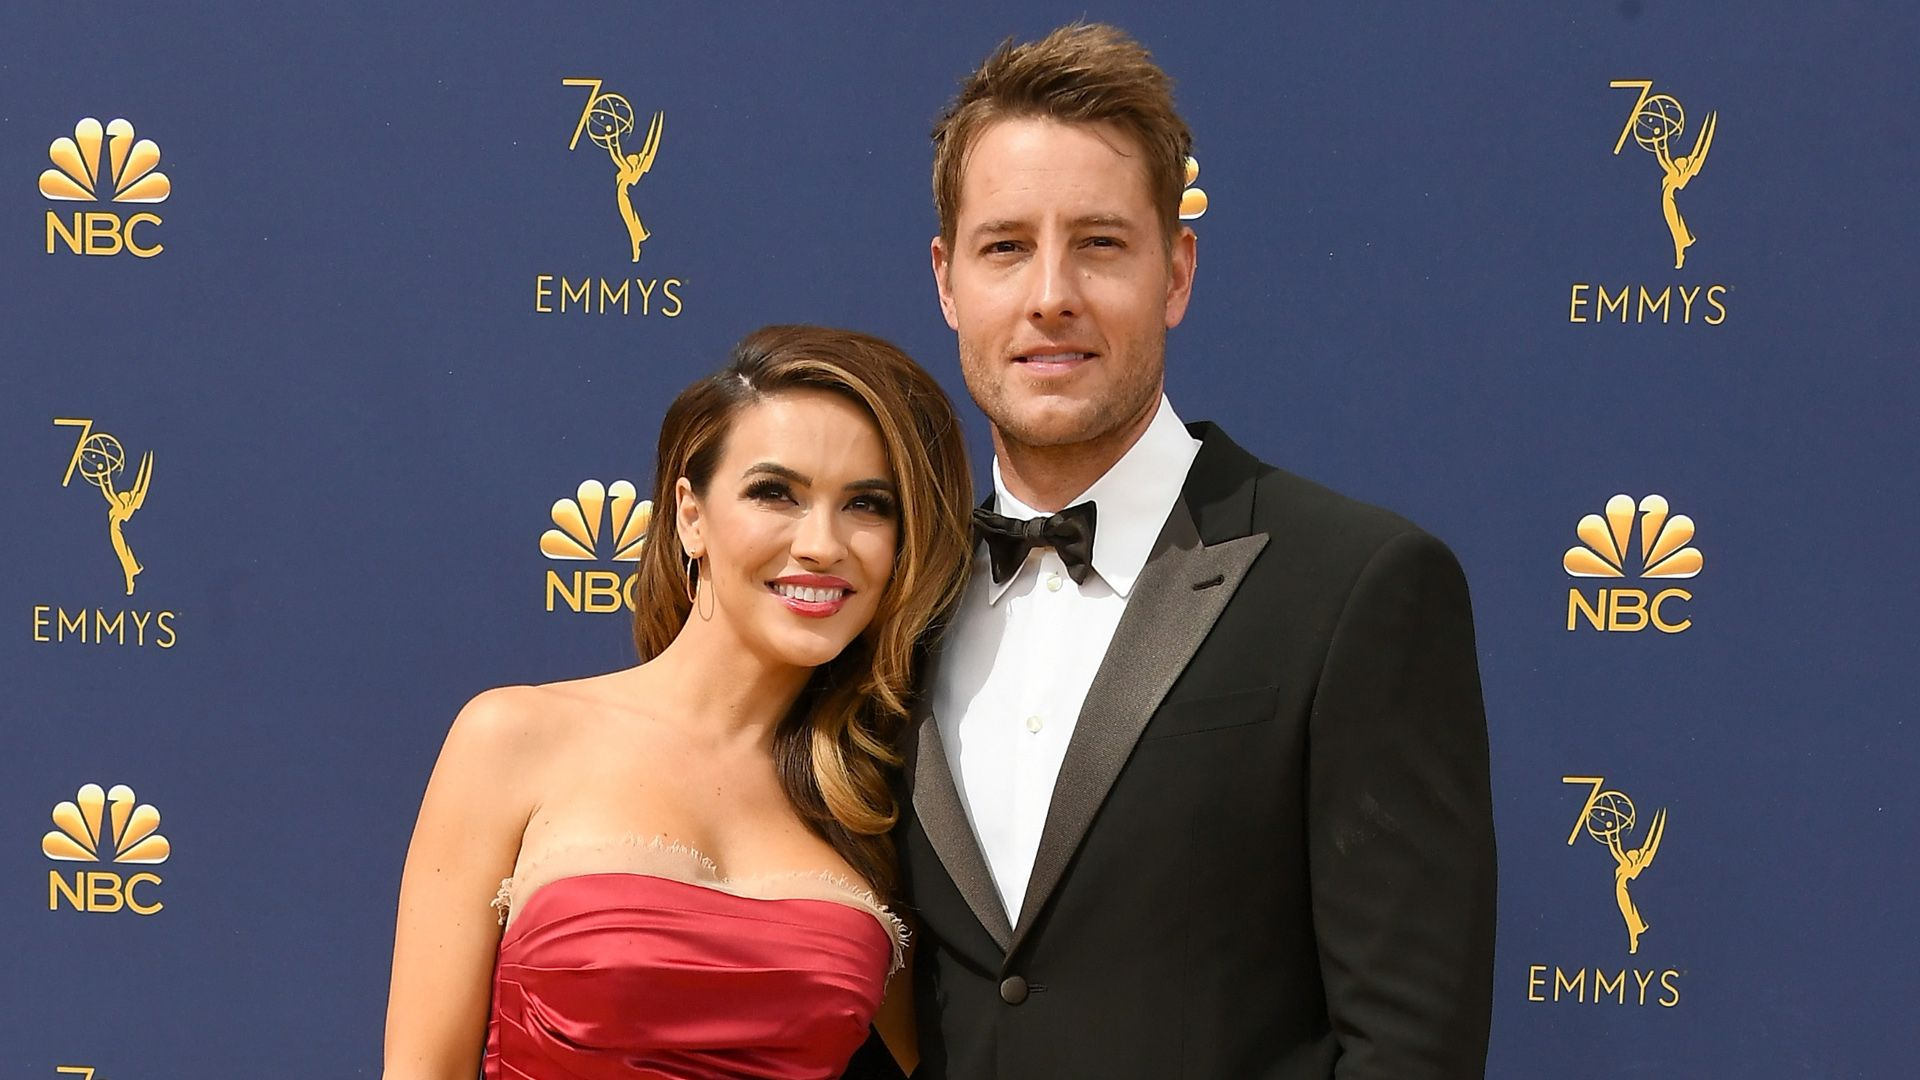 'This Is Us' Star Justin Hartley and His Wife Chrishell Have the Best Love Story